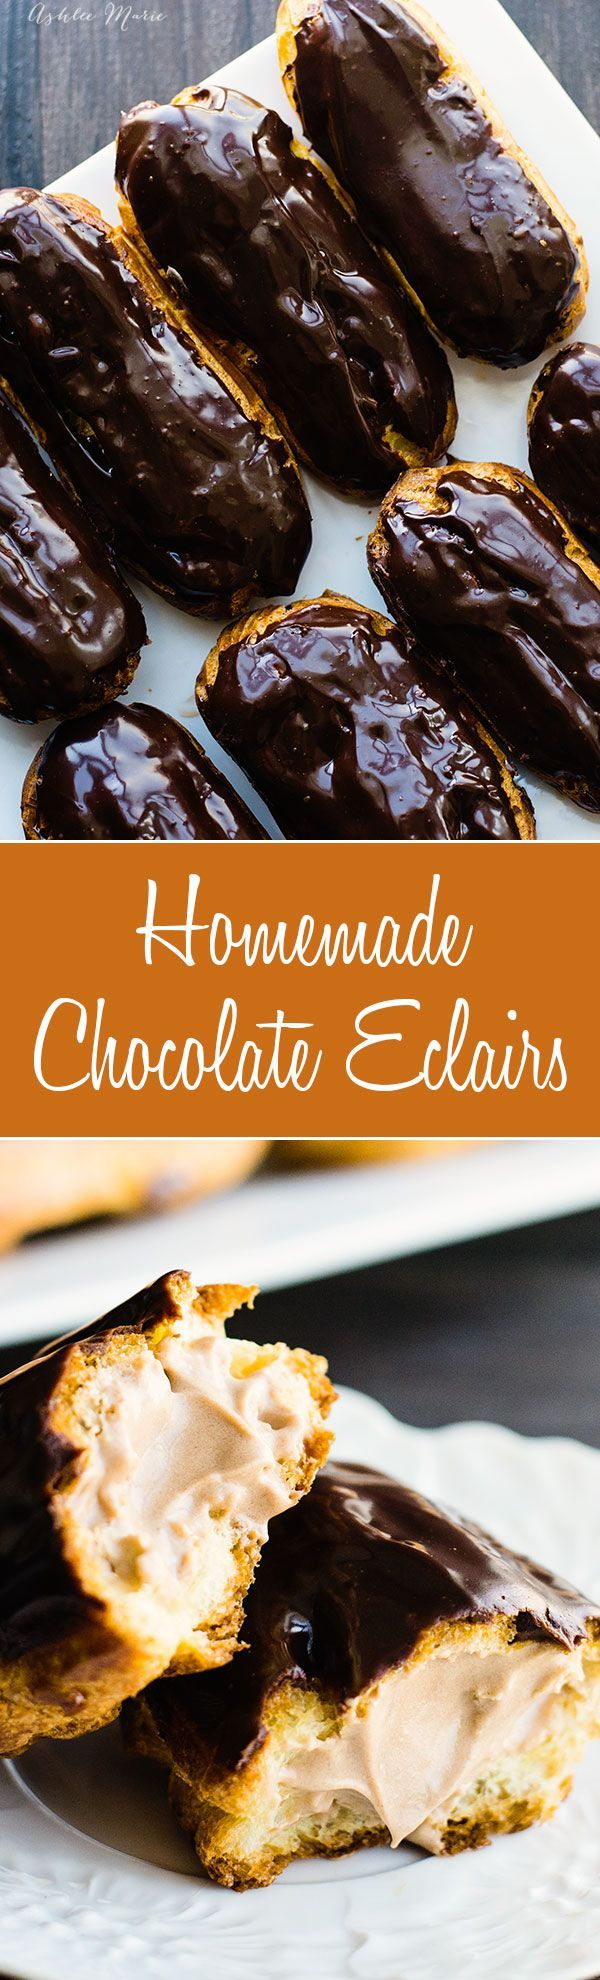 these homemade chocolate eclairs are a sweet treat - full recipes and video tutorial for the pate a choux dough, chocolate pastry cream filling and ganache glaze